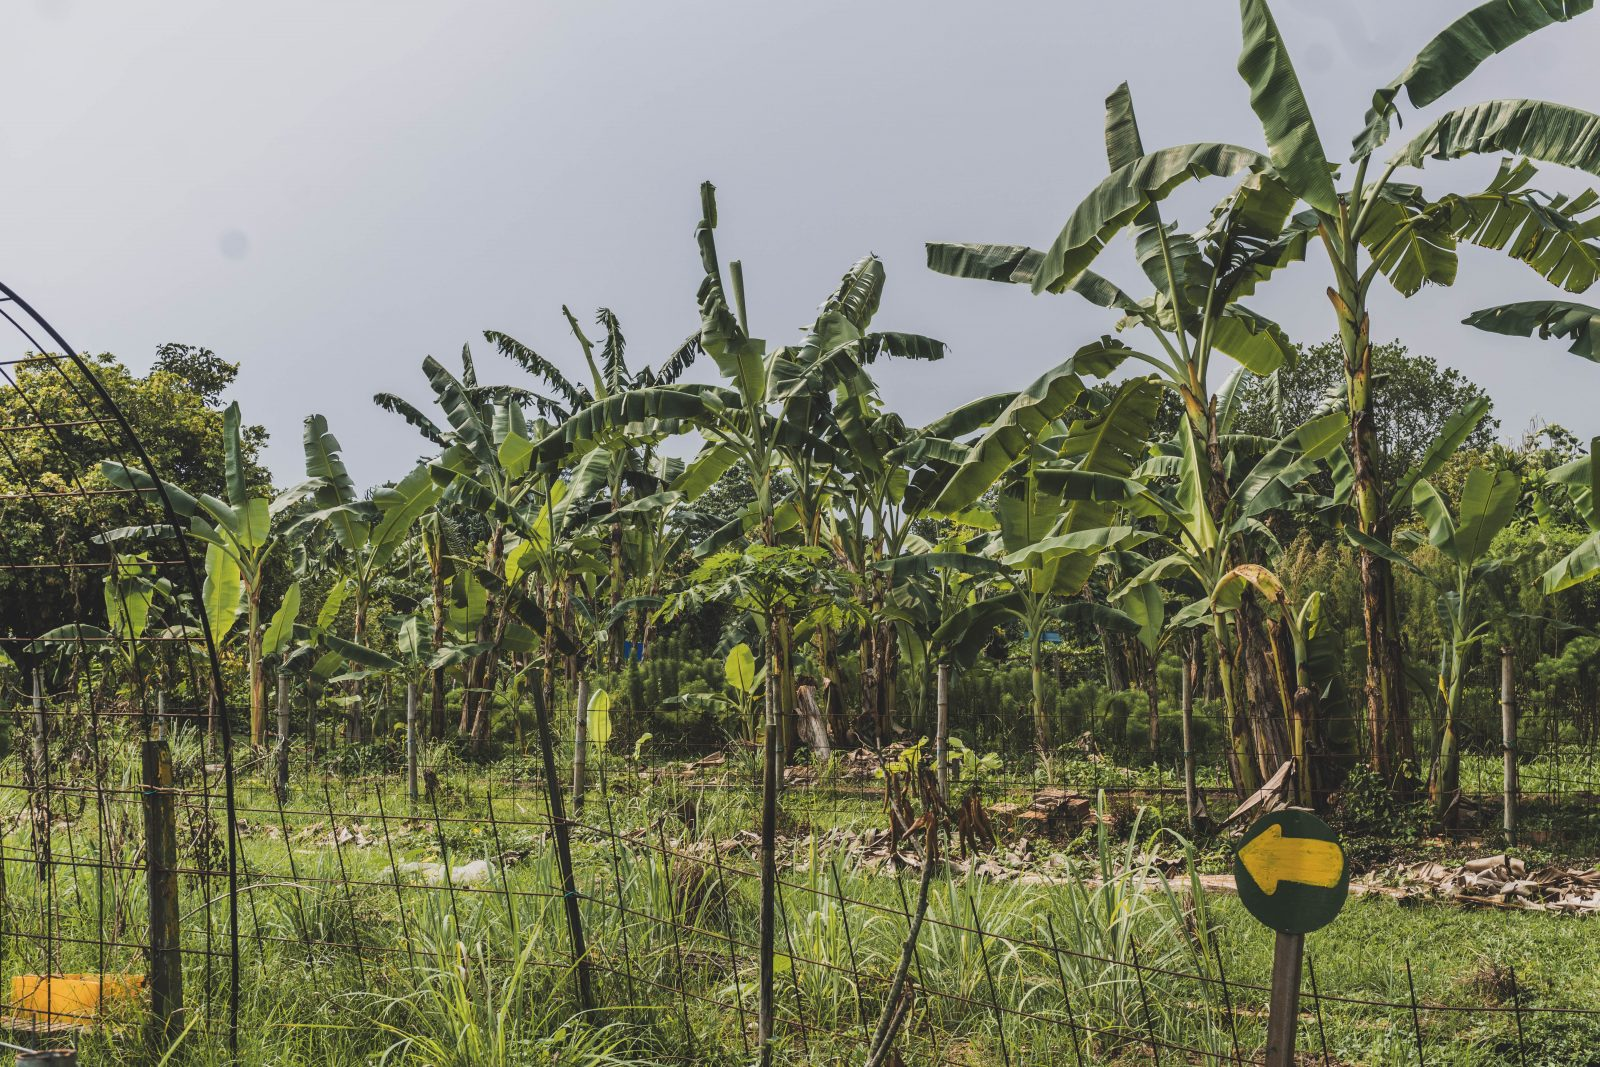 Maximising land use for farming and education purposes